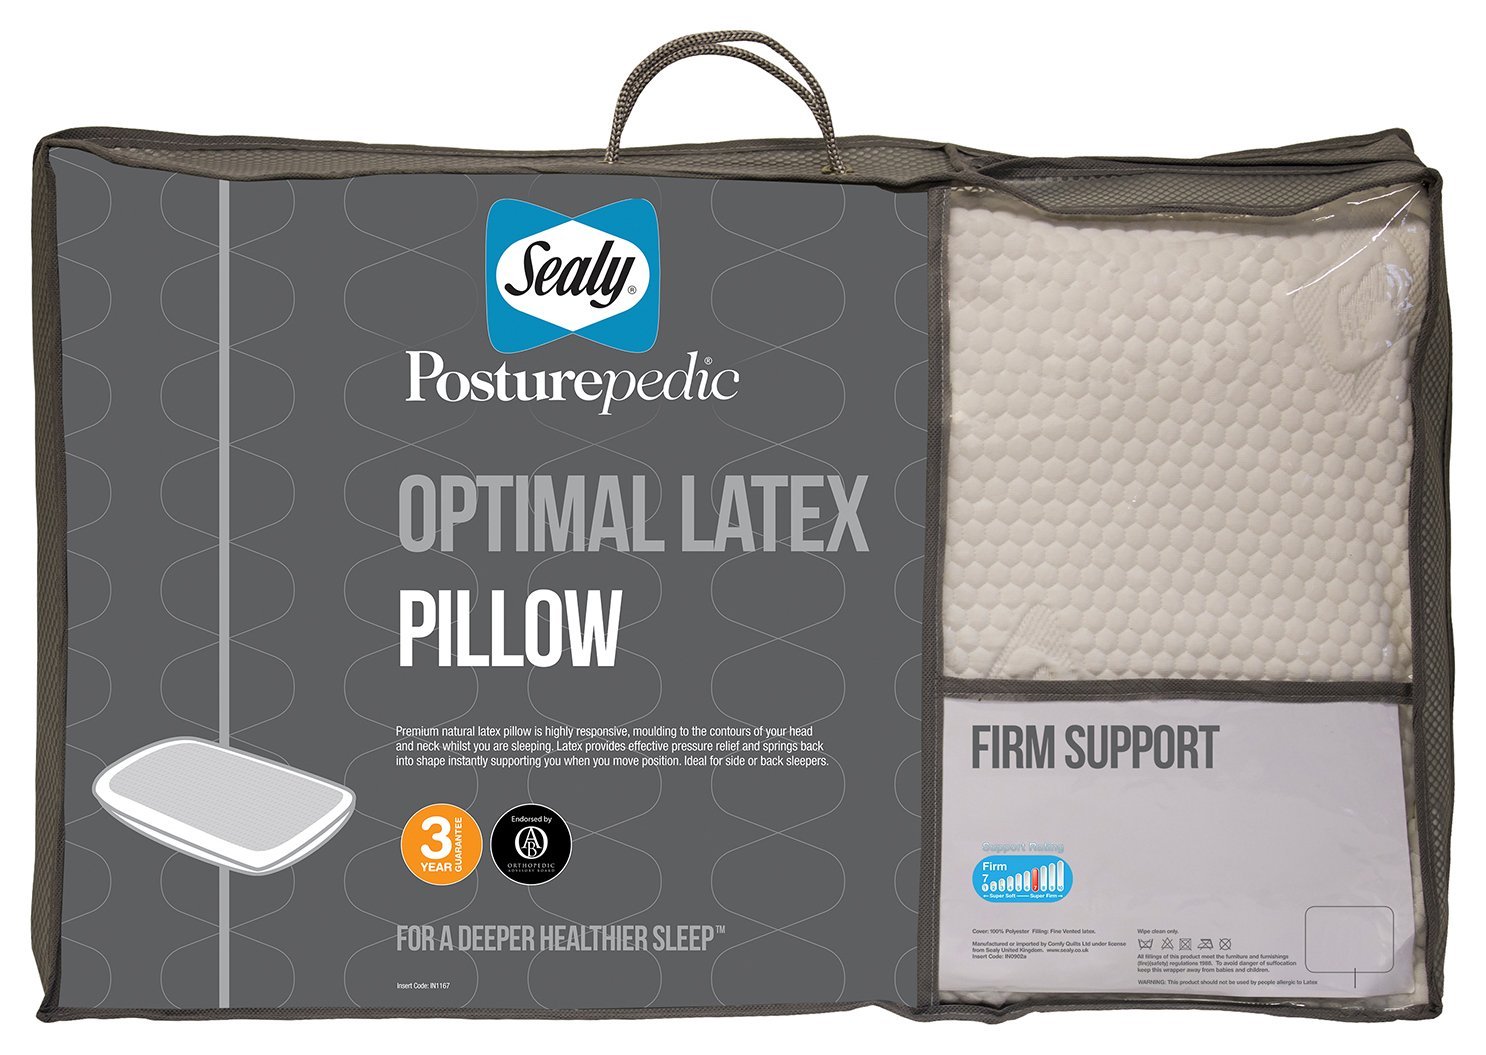 Sealy Posturepedic Optimal Latex Pillow